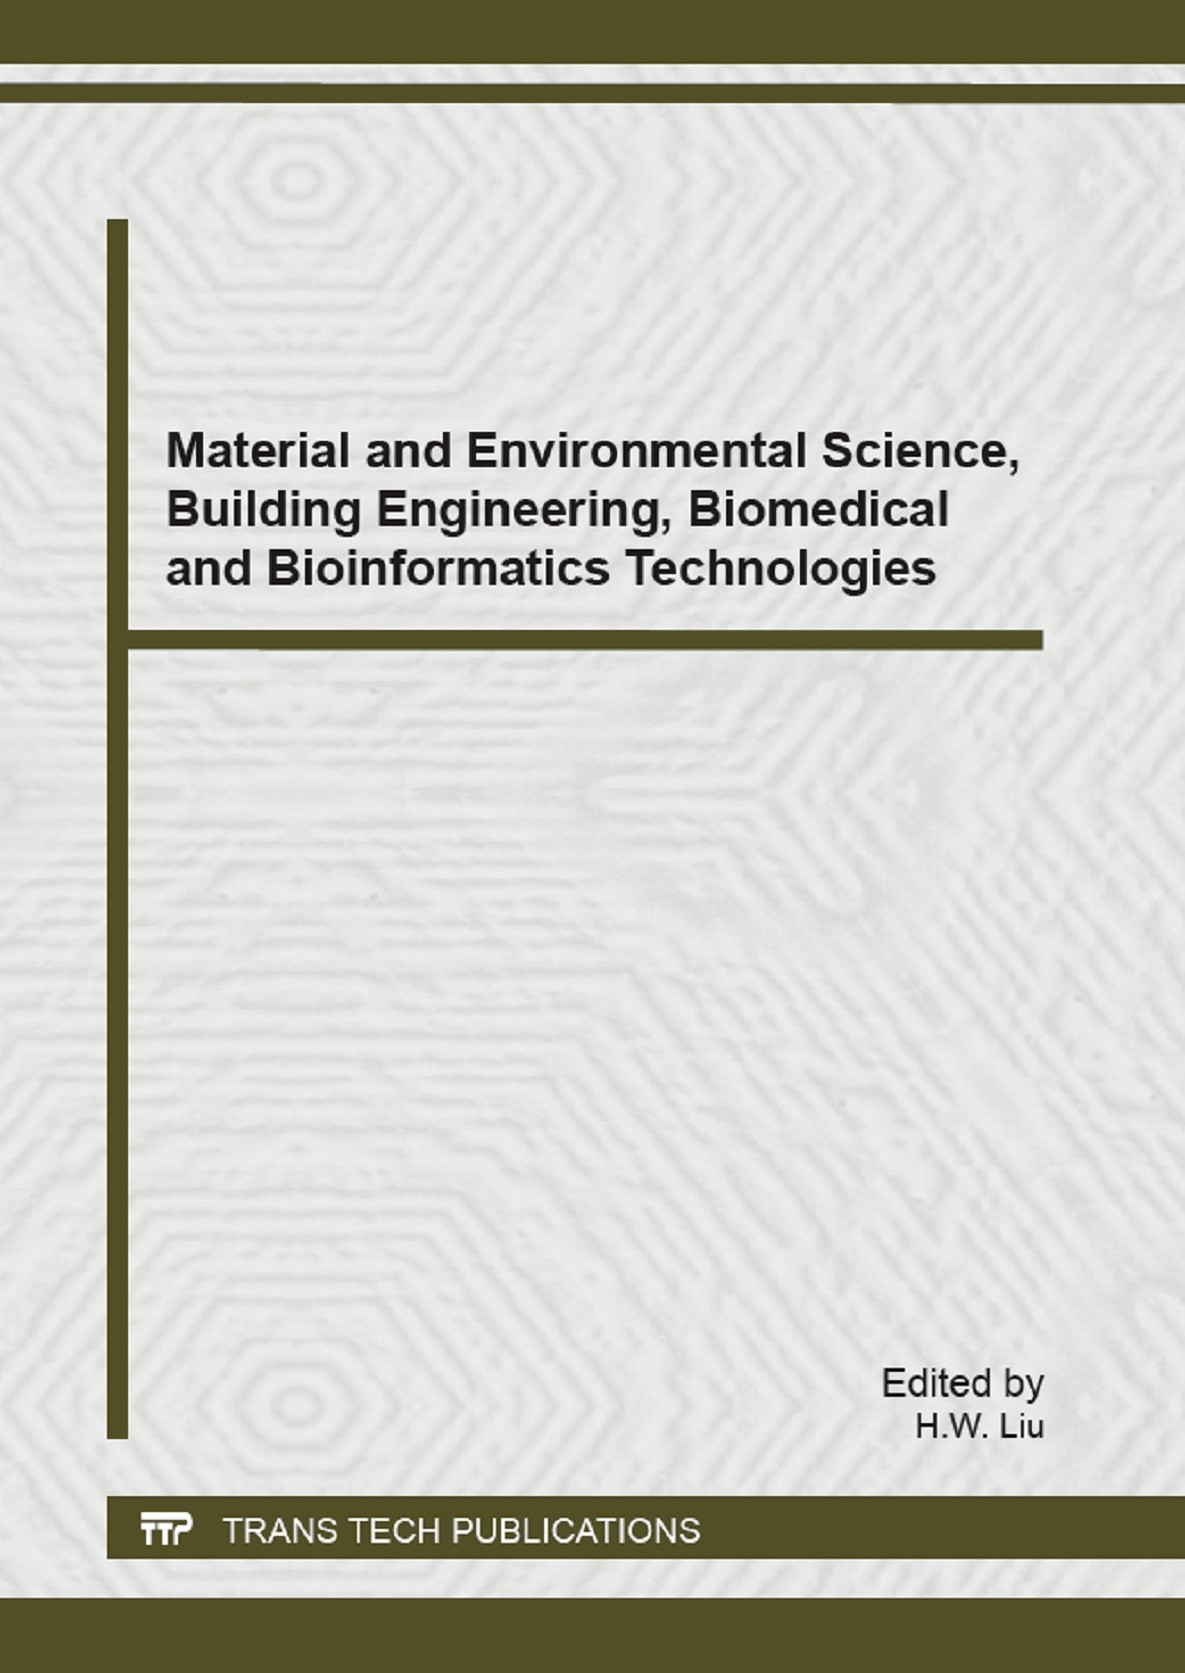 Material and Environmental Science, Building Engineering, Biomedical and Bioinformatics Technologies | Liu, 2014 (Cover)